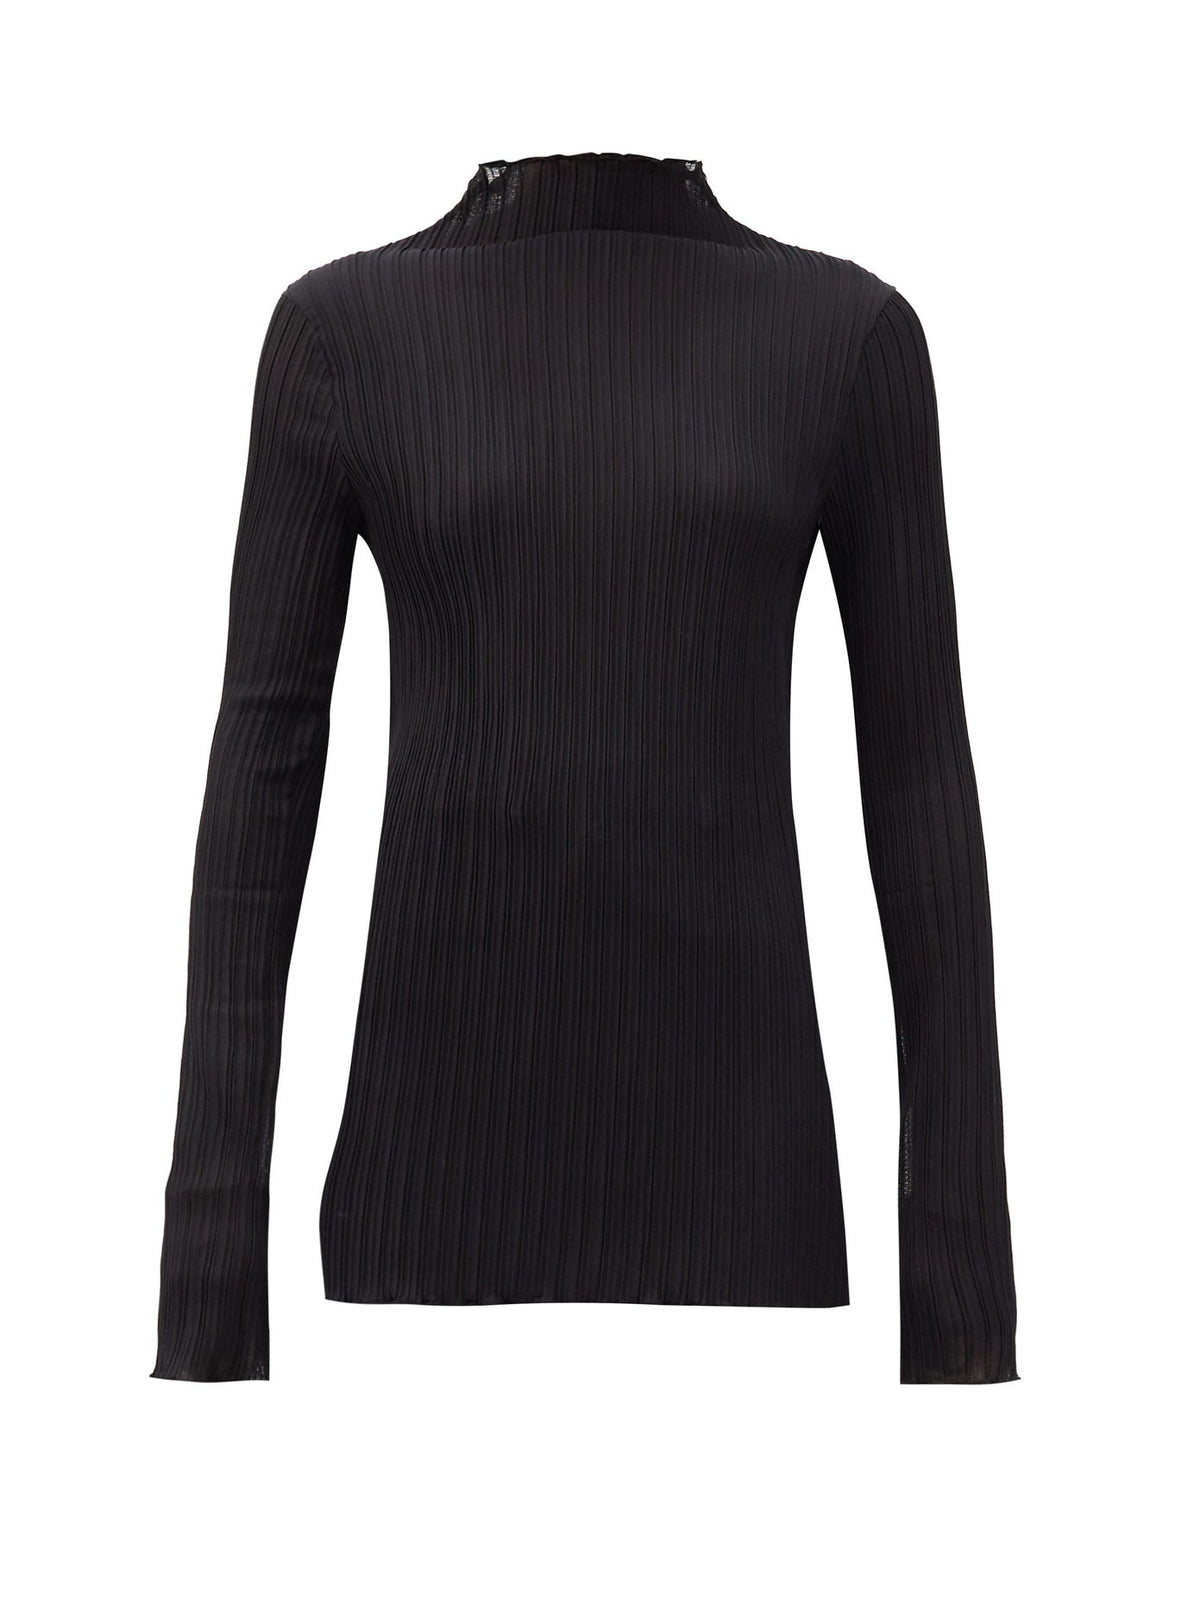 Ribbed Jersey High Neck Top | Black